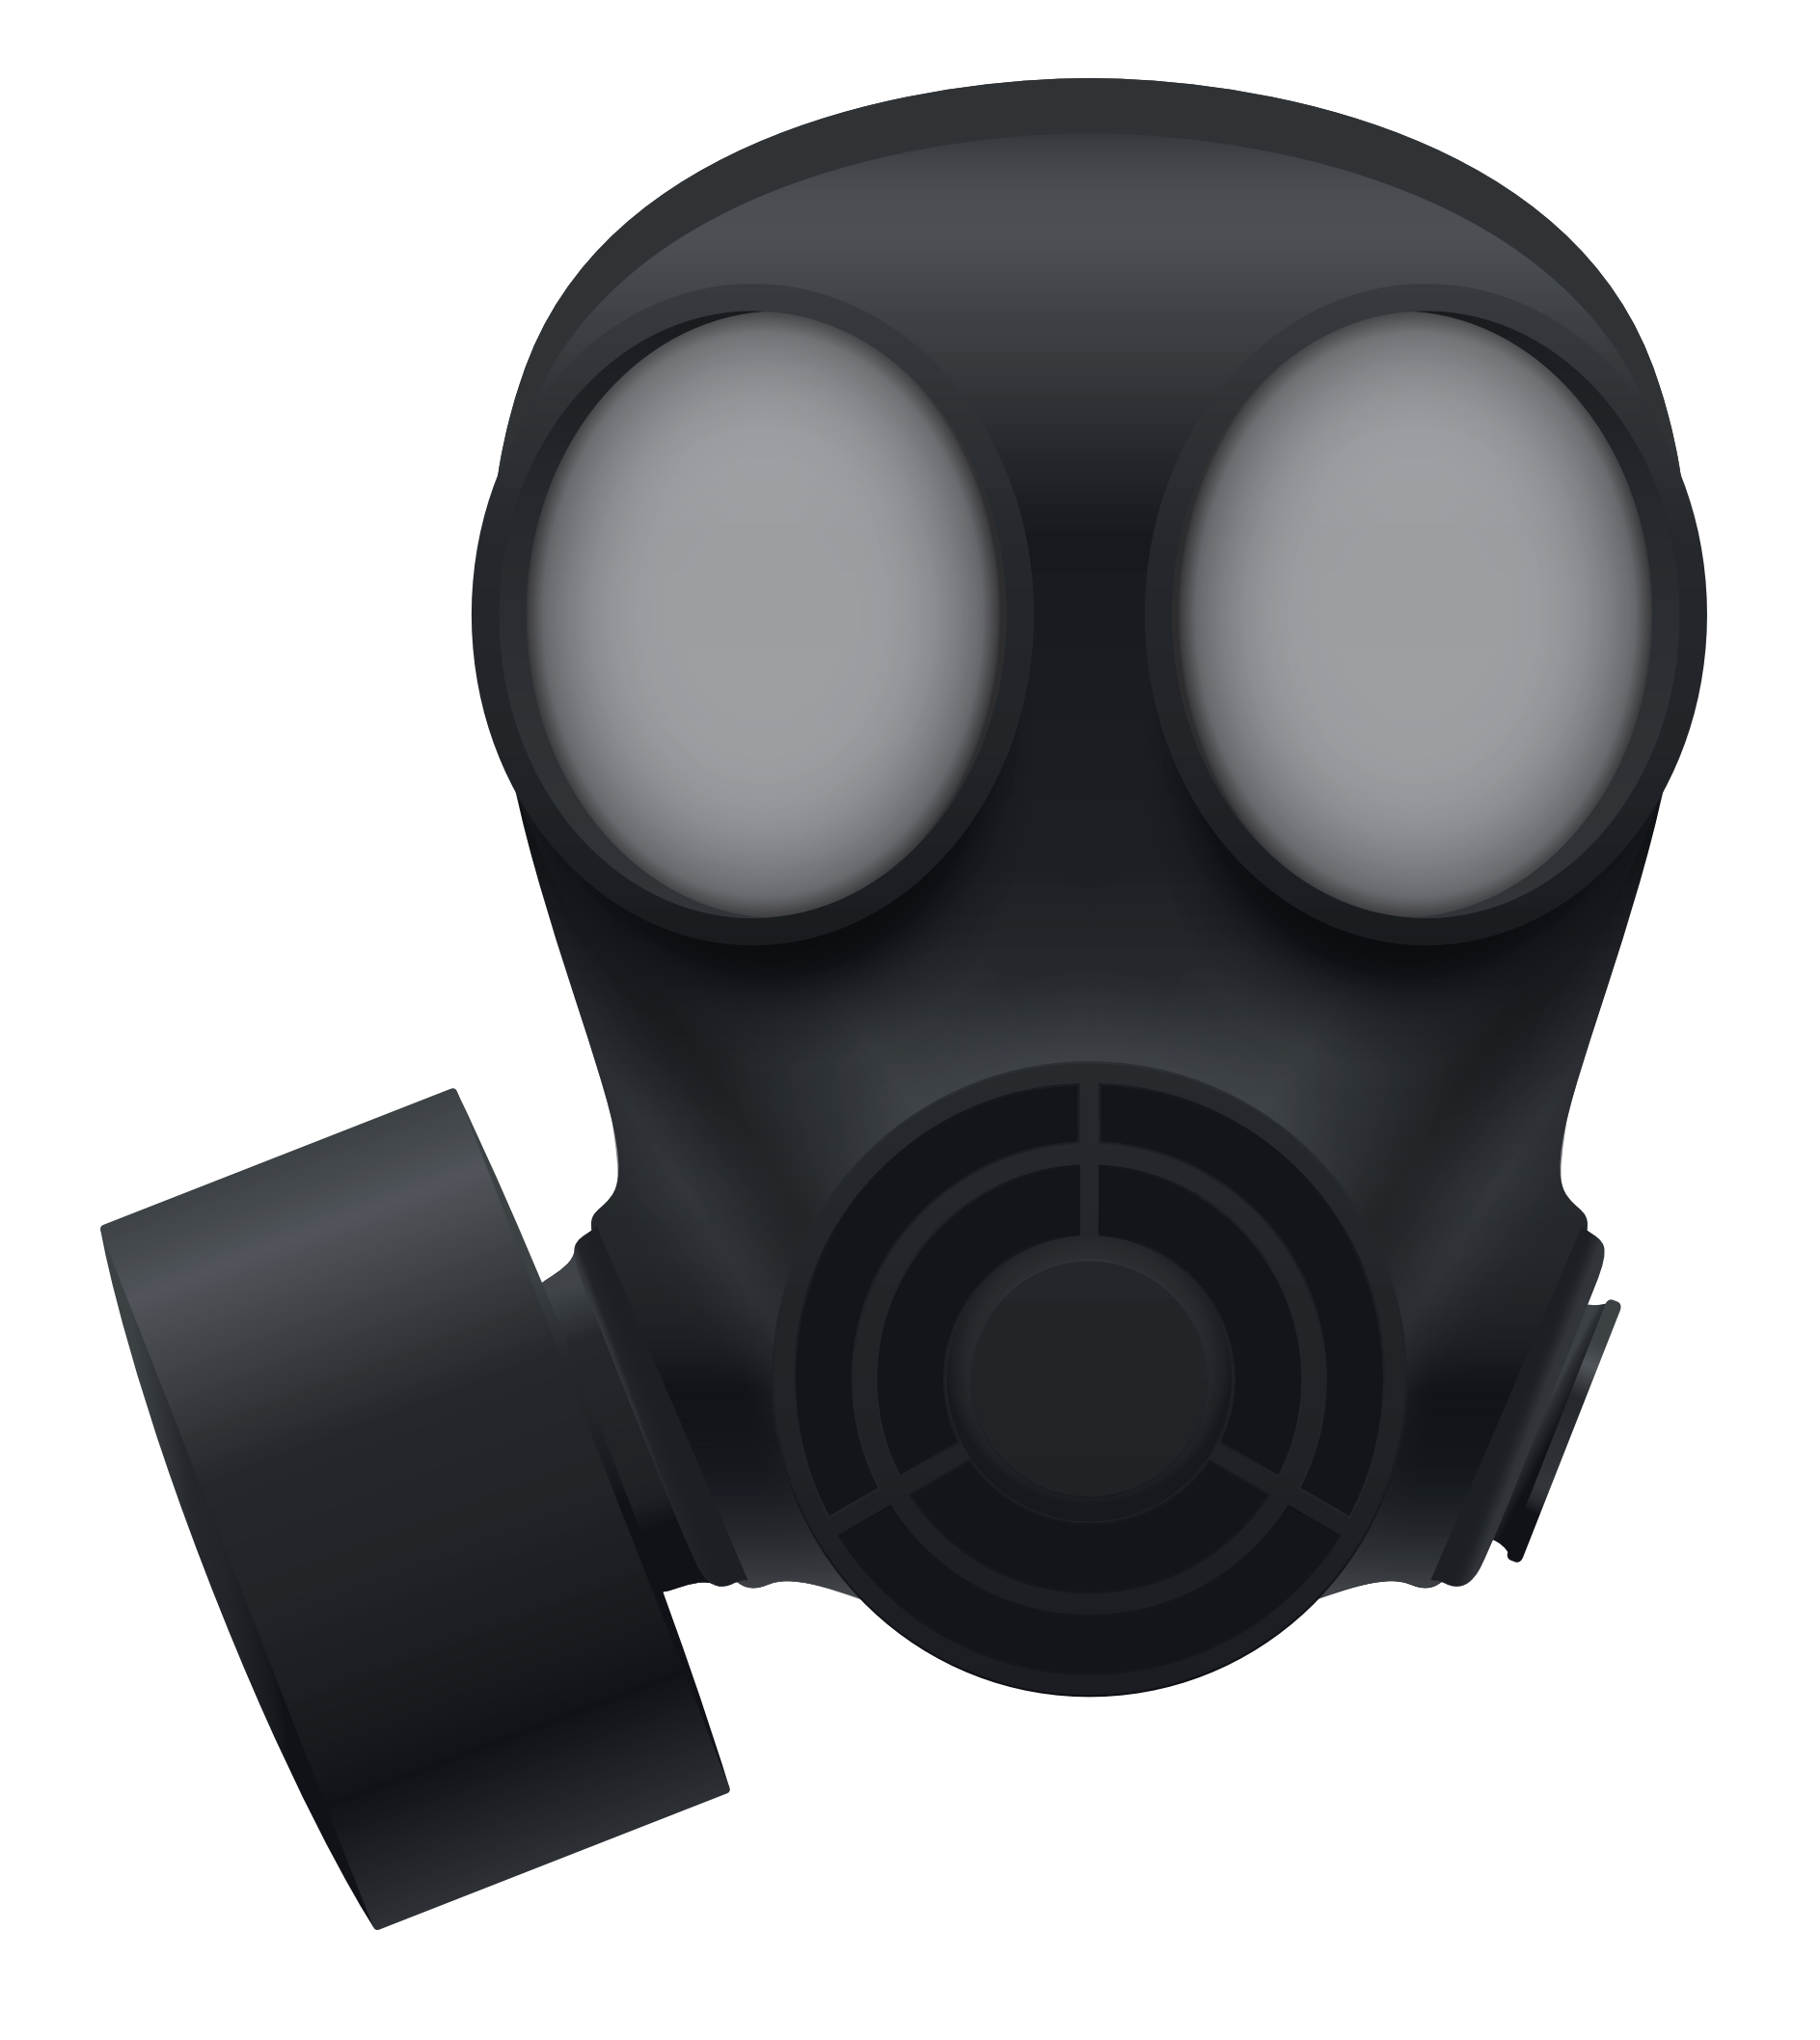 Mask PNG - 4300